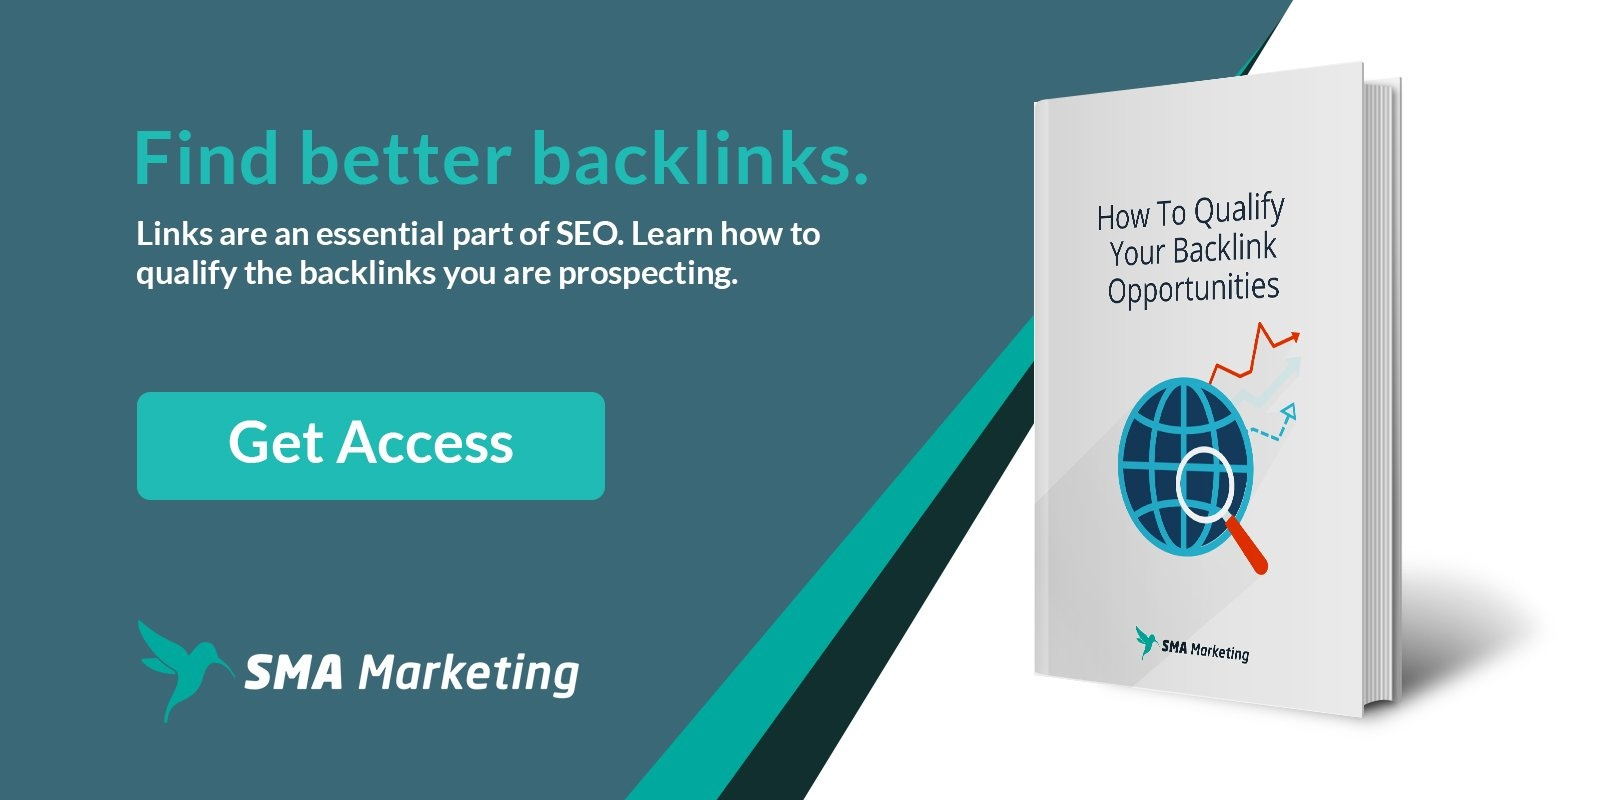 Link Building Guide - How to Qualify Backlink Opportunities - Better Backlinks